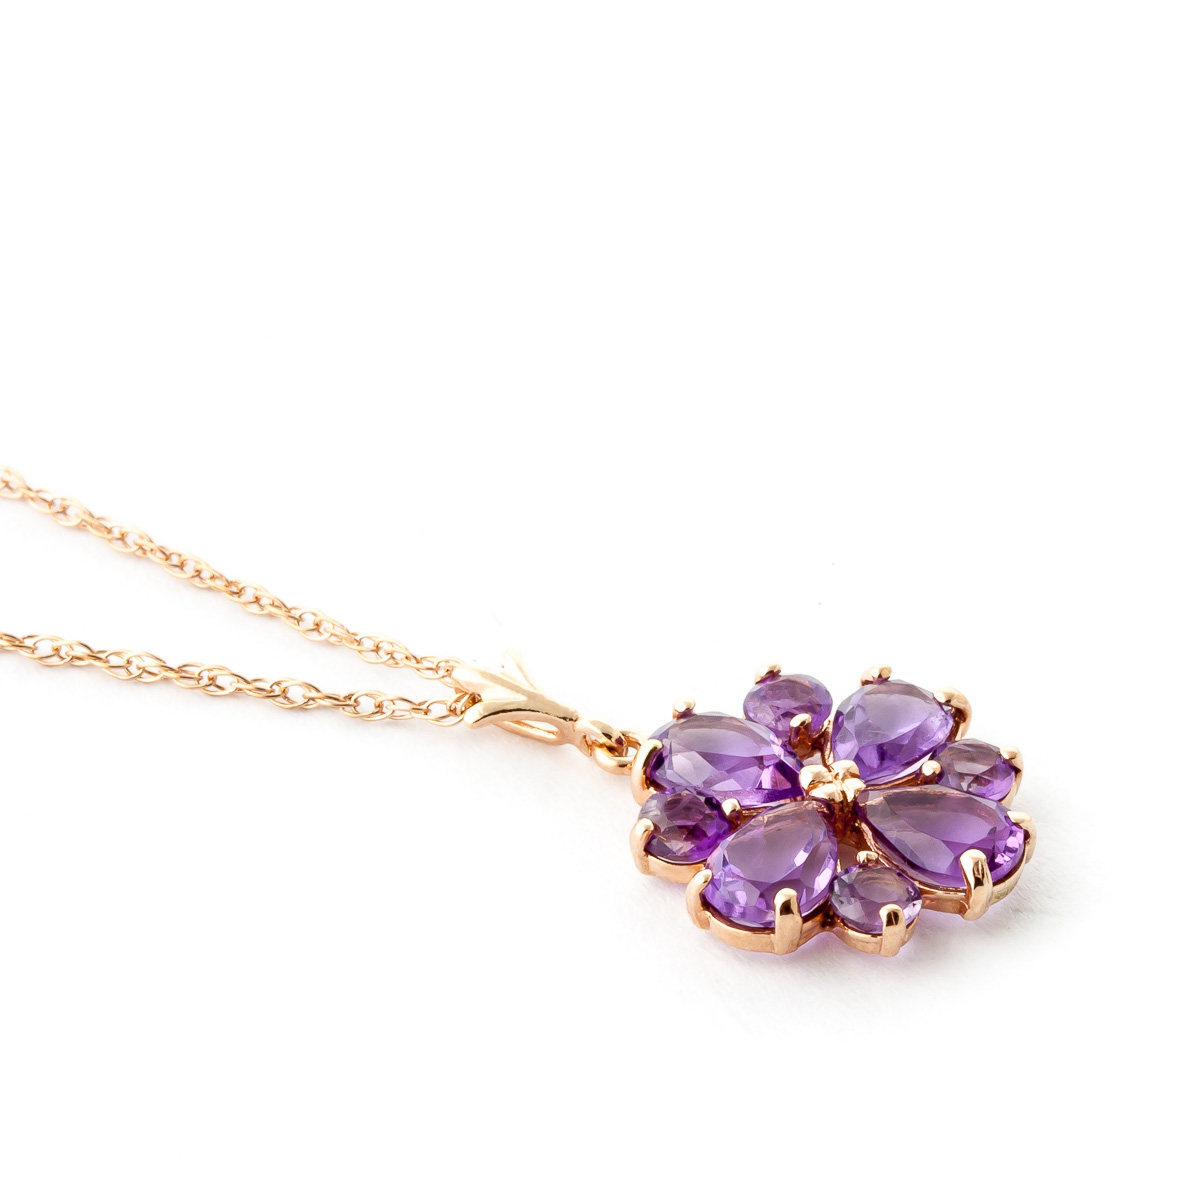 Amethyst Sunflower Pendant Necklace 2.43ctw in 9ct Rose Gold